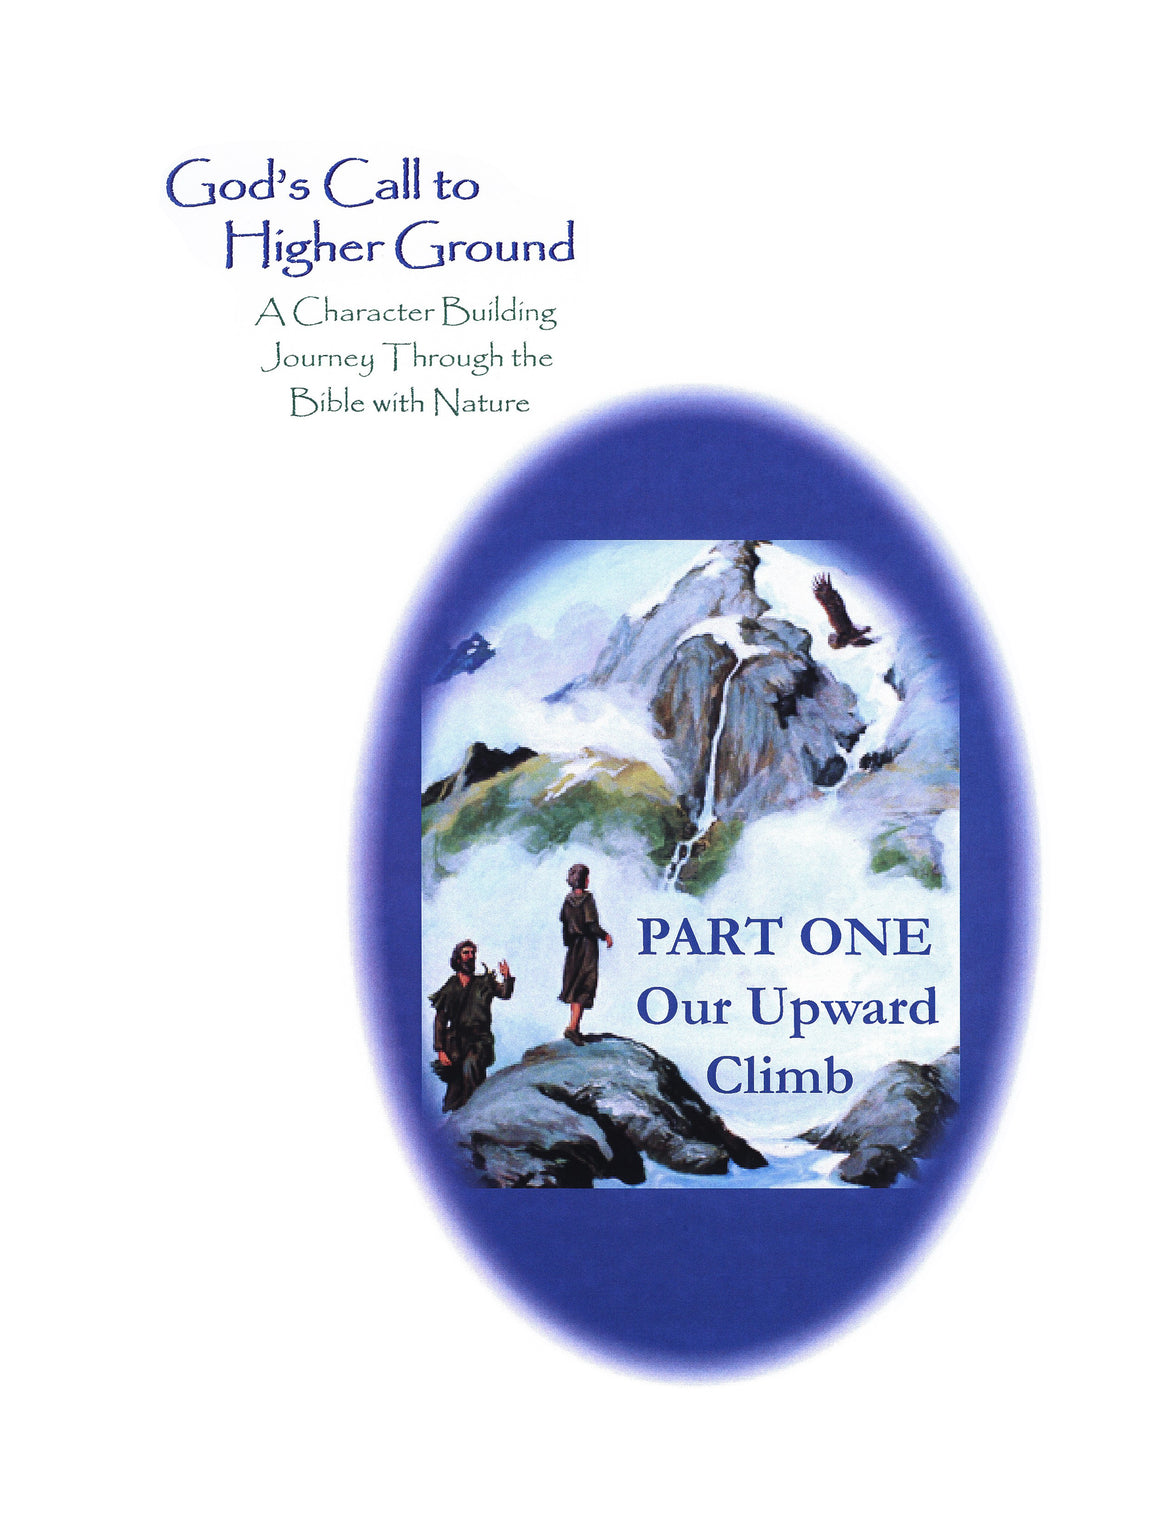 God's Call to Higher Ground Part 1